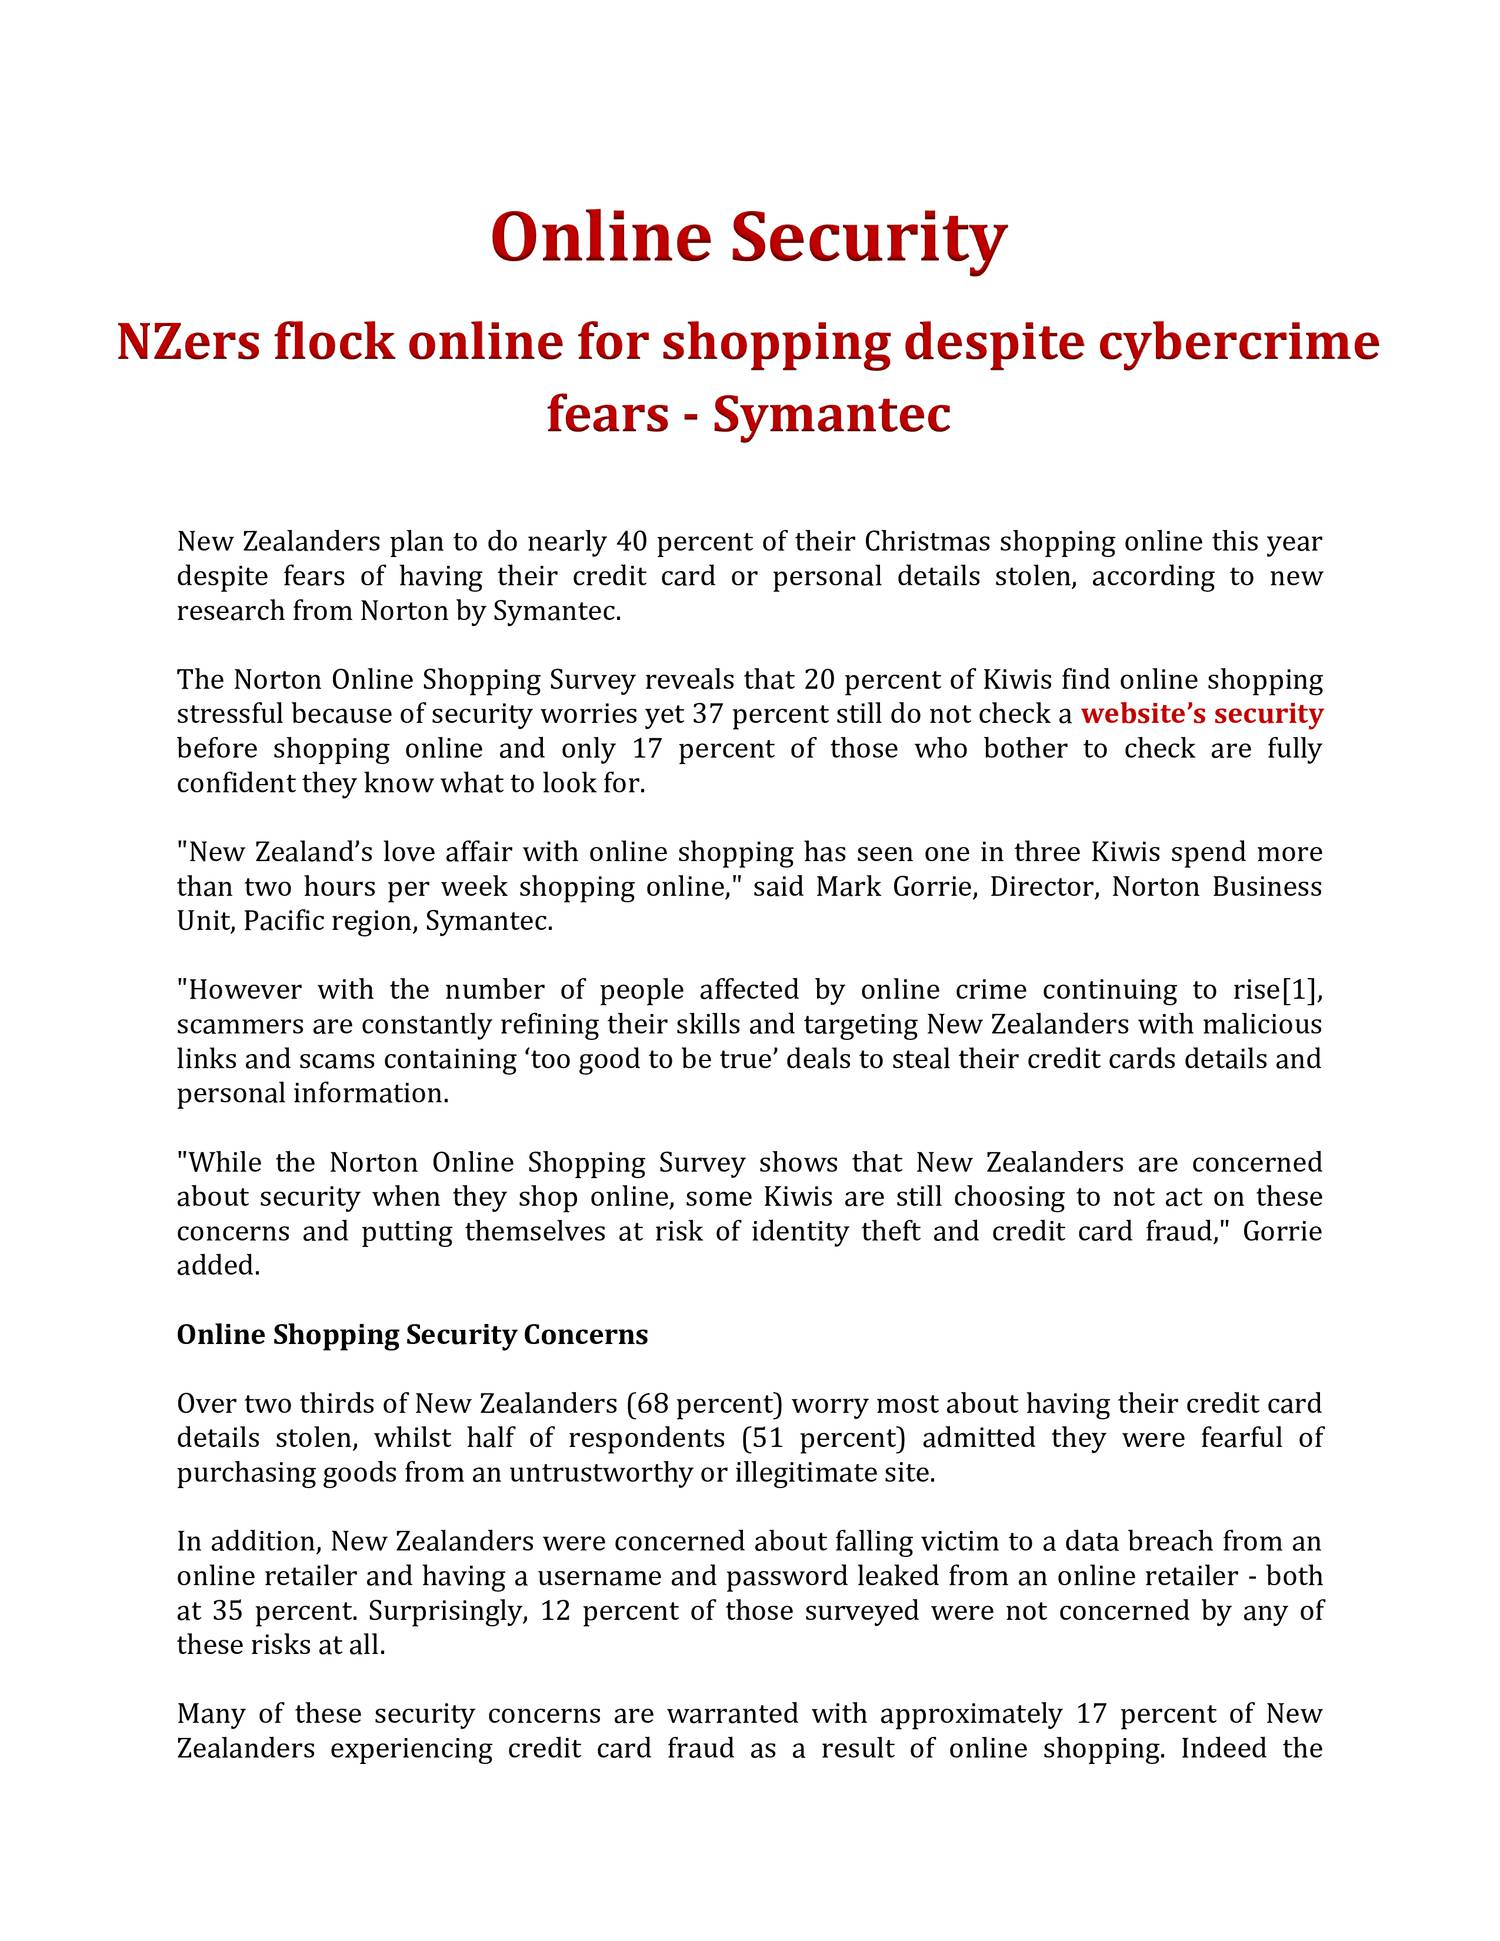 seminar report on cybercrime and security pdf